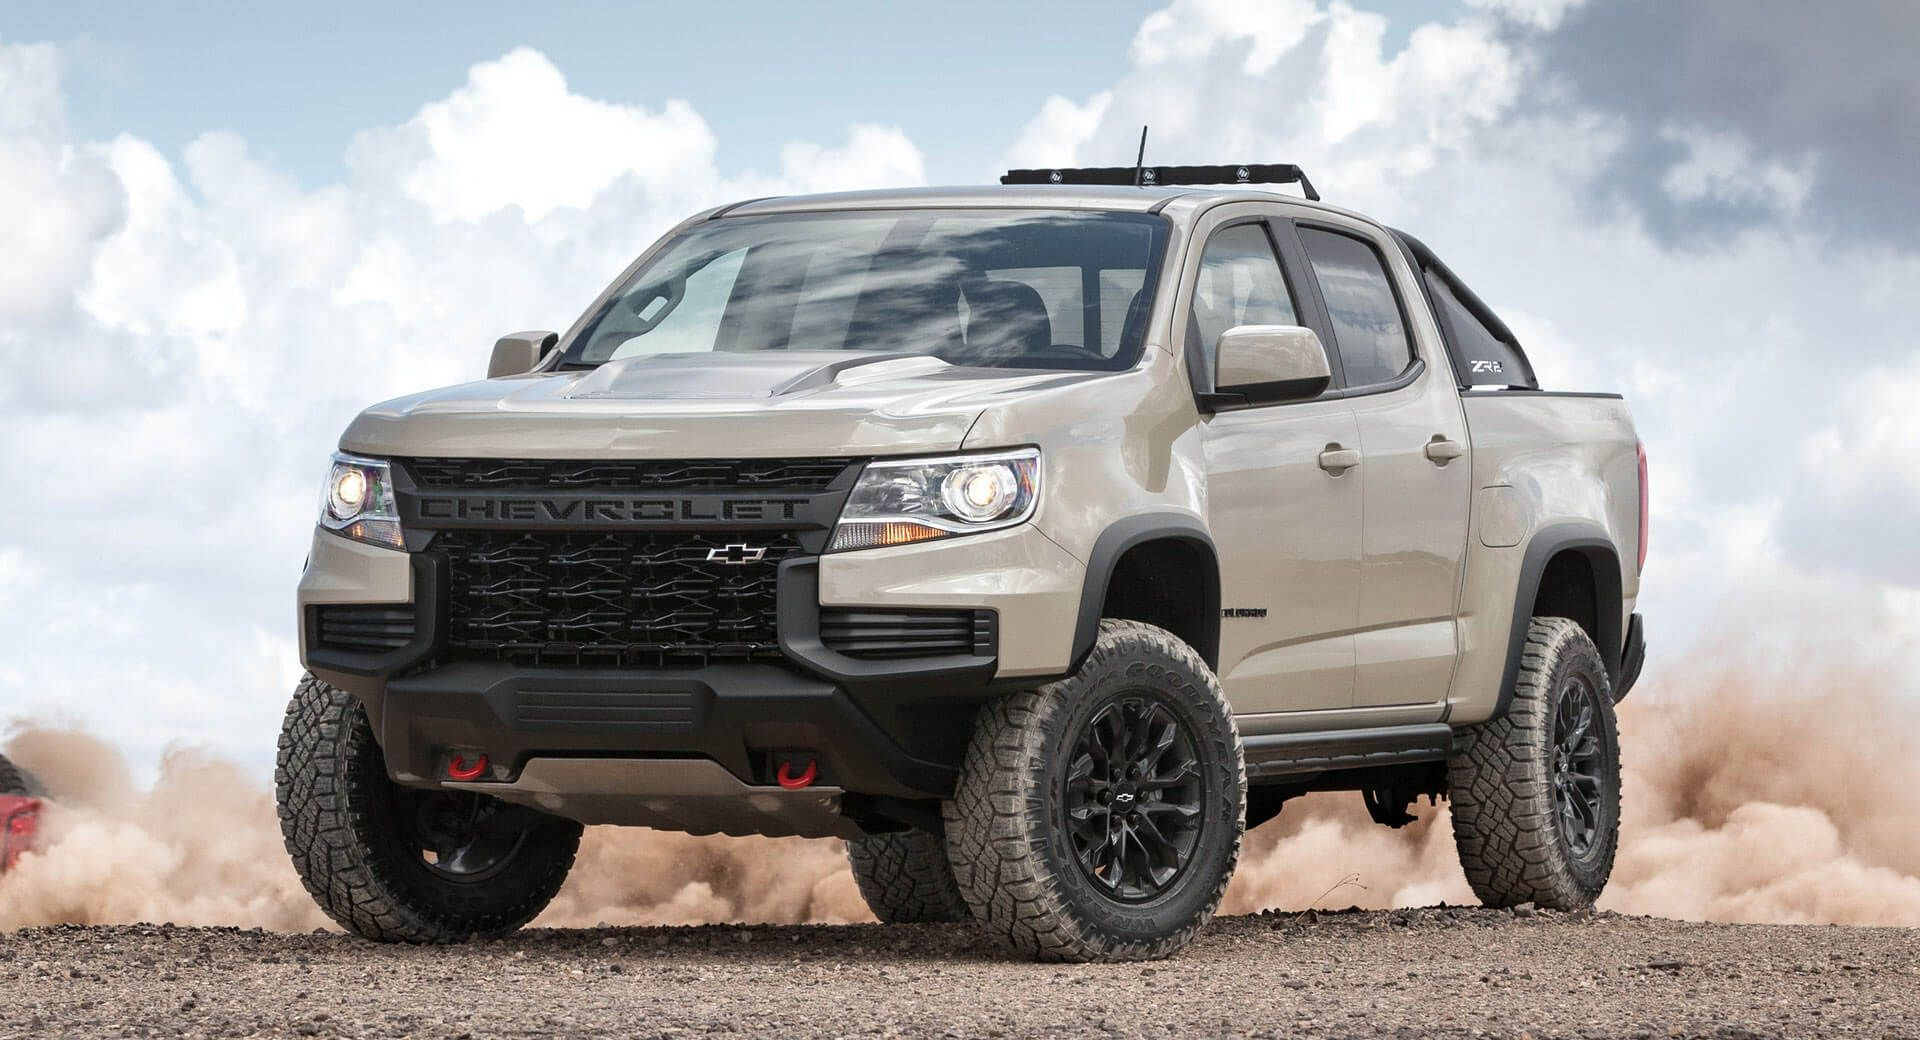 2021 Chevy Colorado Zr2 Breaks Cover Ahead Of Sema Debut With